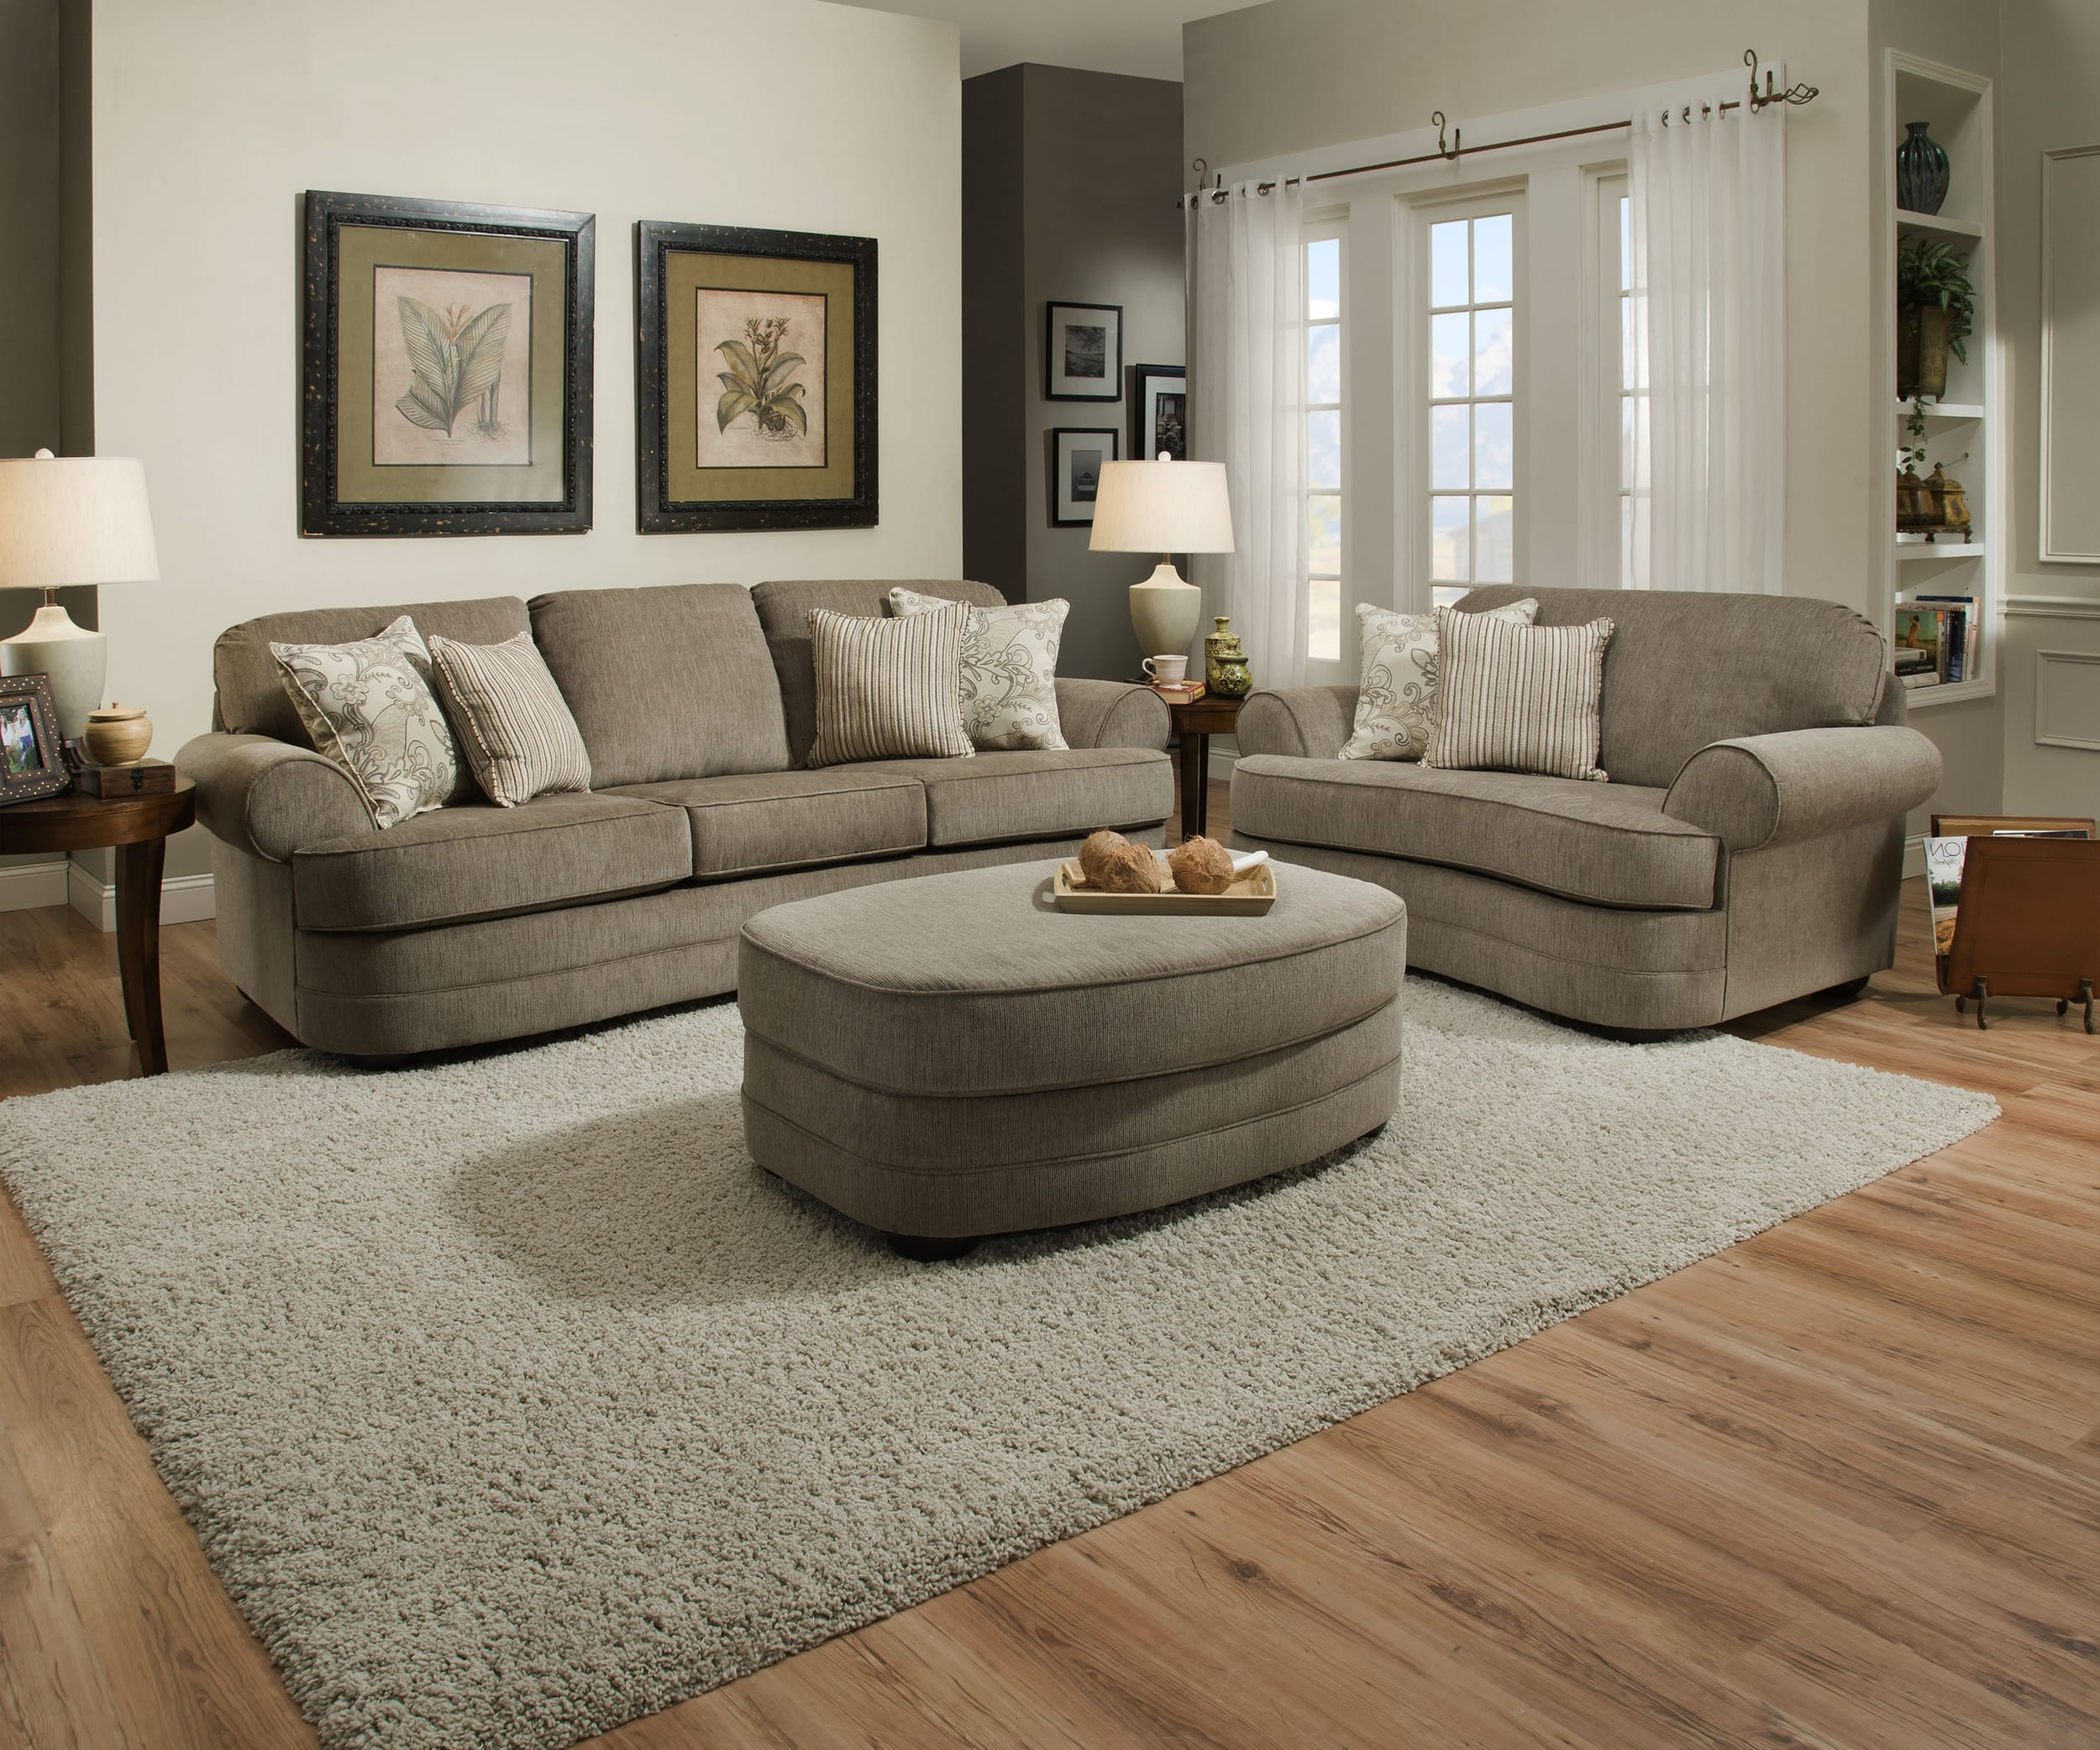 Simmons Upholstery 9255BR-015 Grandstand Fawn, 9255BR-03 Grandstand Fawn